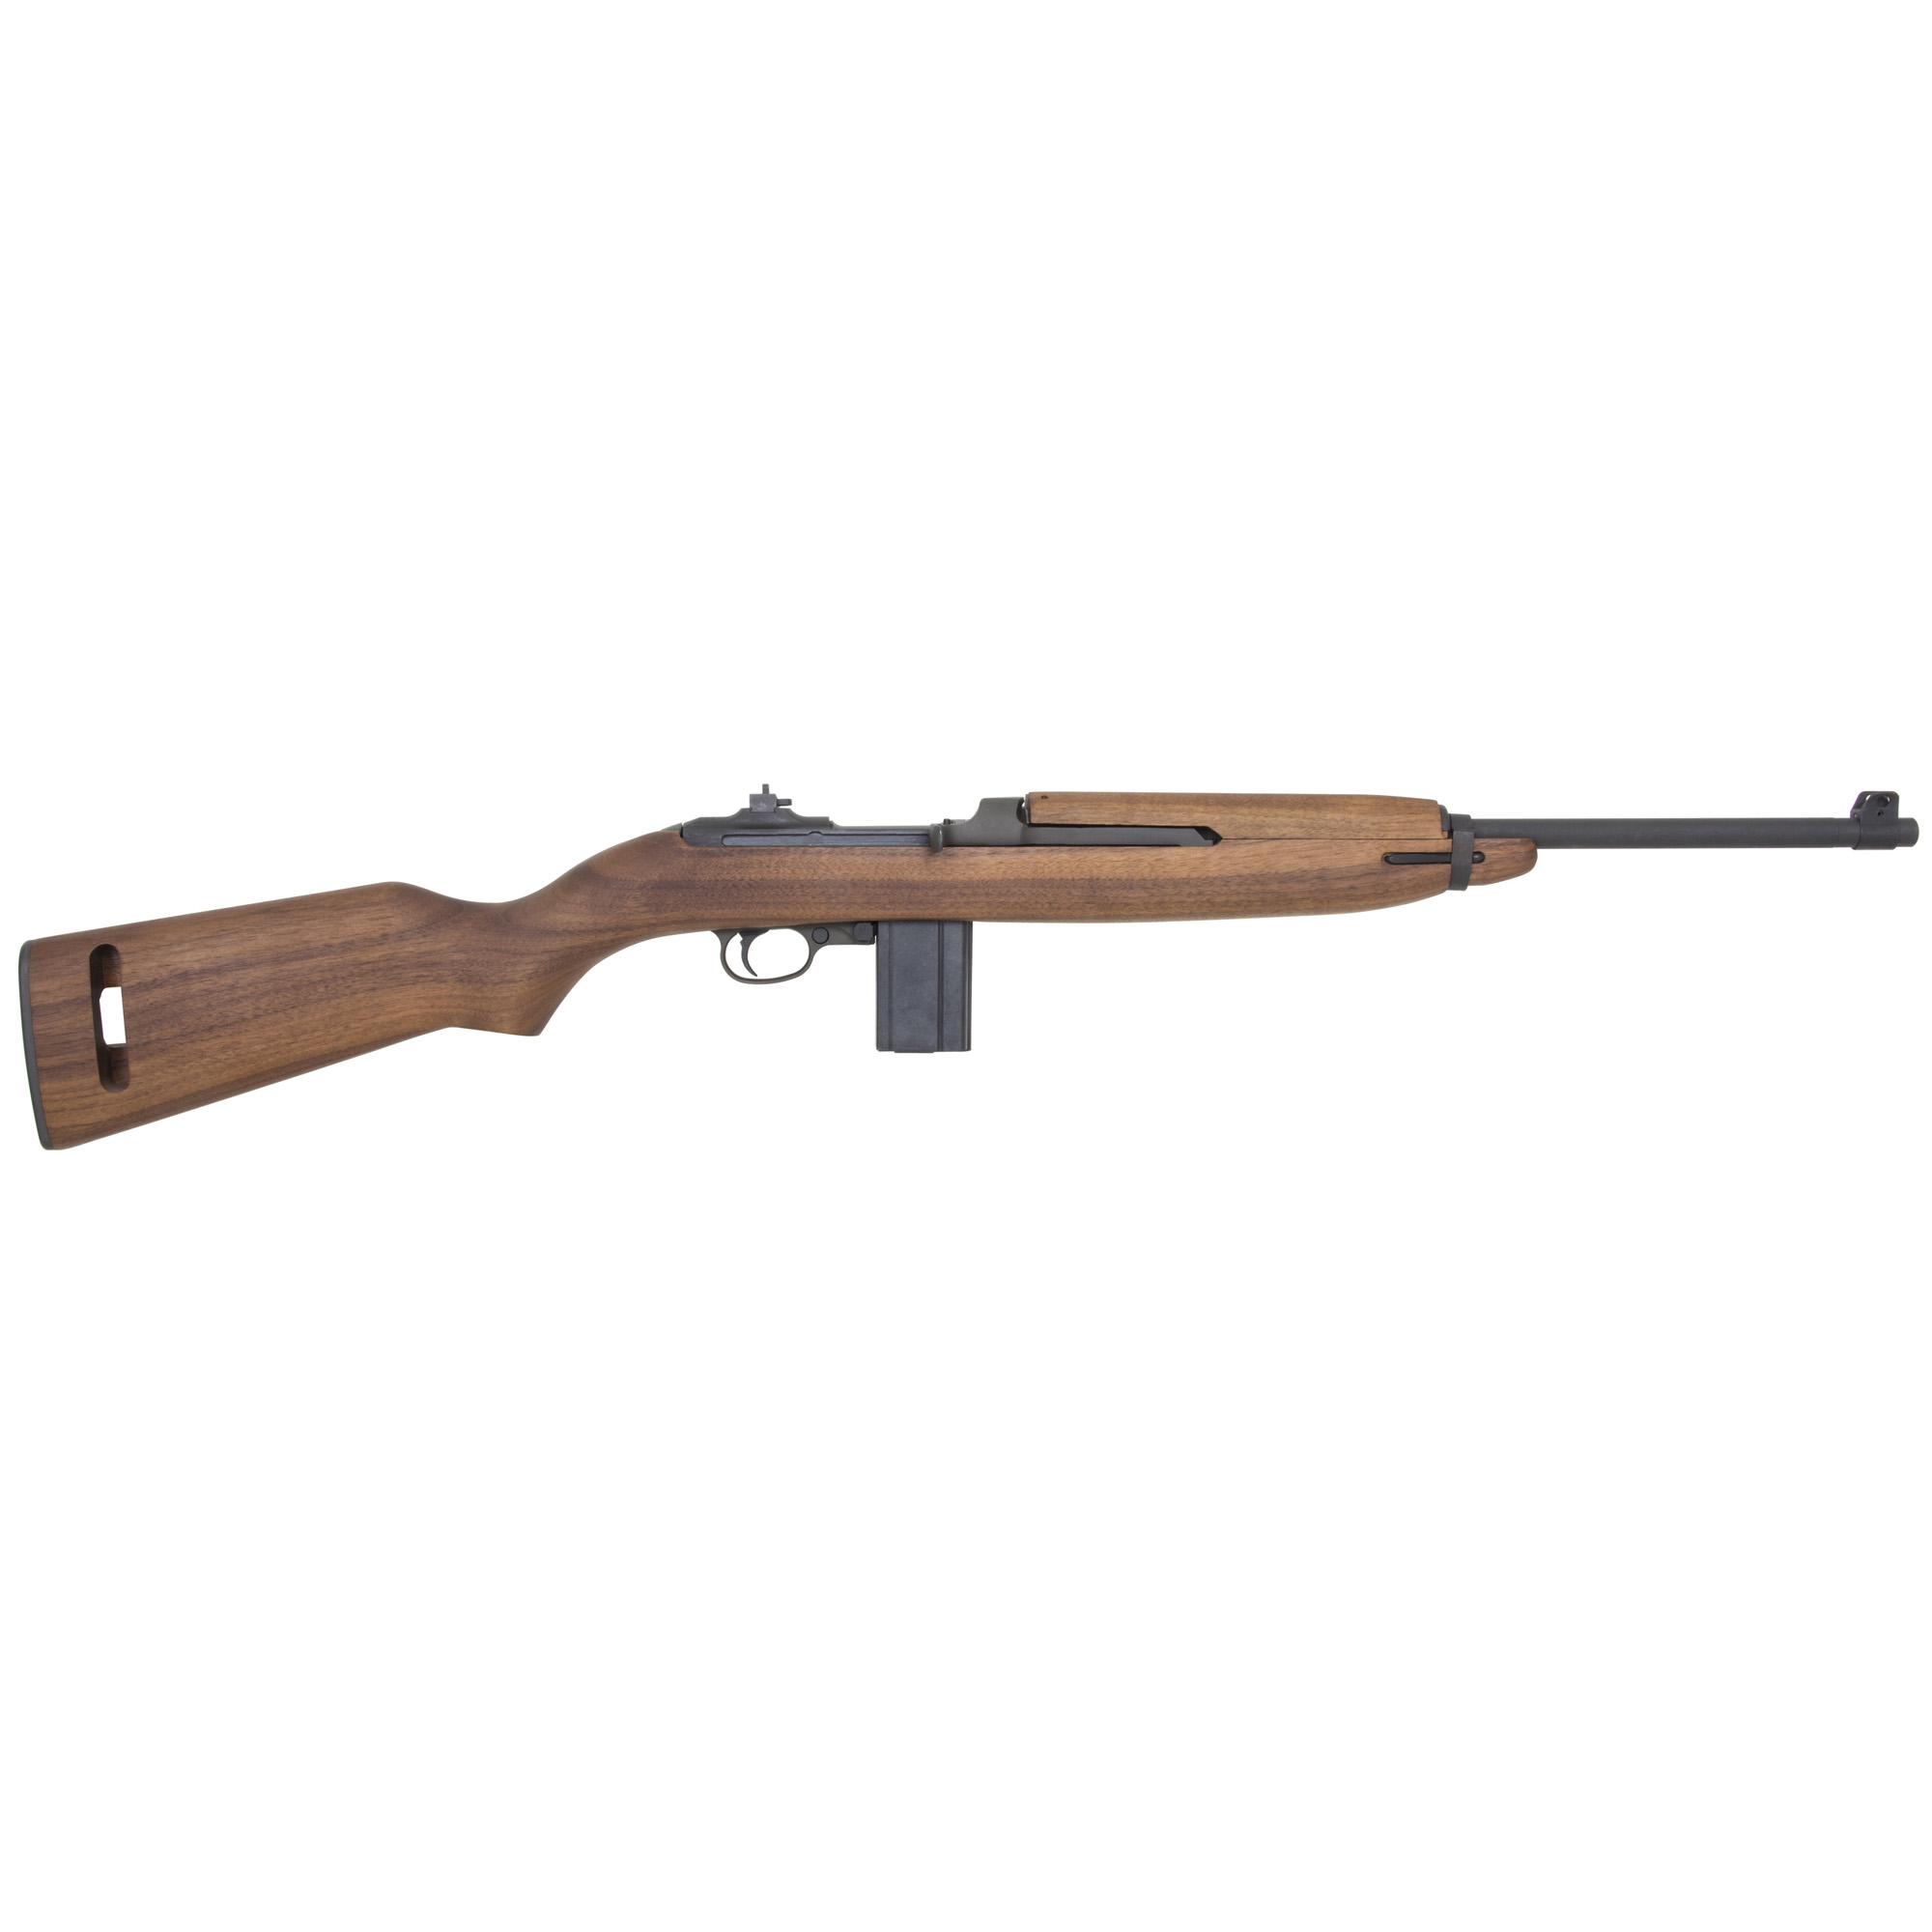 "Each Auto-Ordnance M1 Carbine is a faithful reproduction of the famous military rifles that served American forces beginning in World War II. Each rifle has a Parkerized finish"" American Walnut stock"" 15 round magazine"" 18"" barrel and flip-style rear sight."